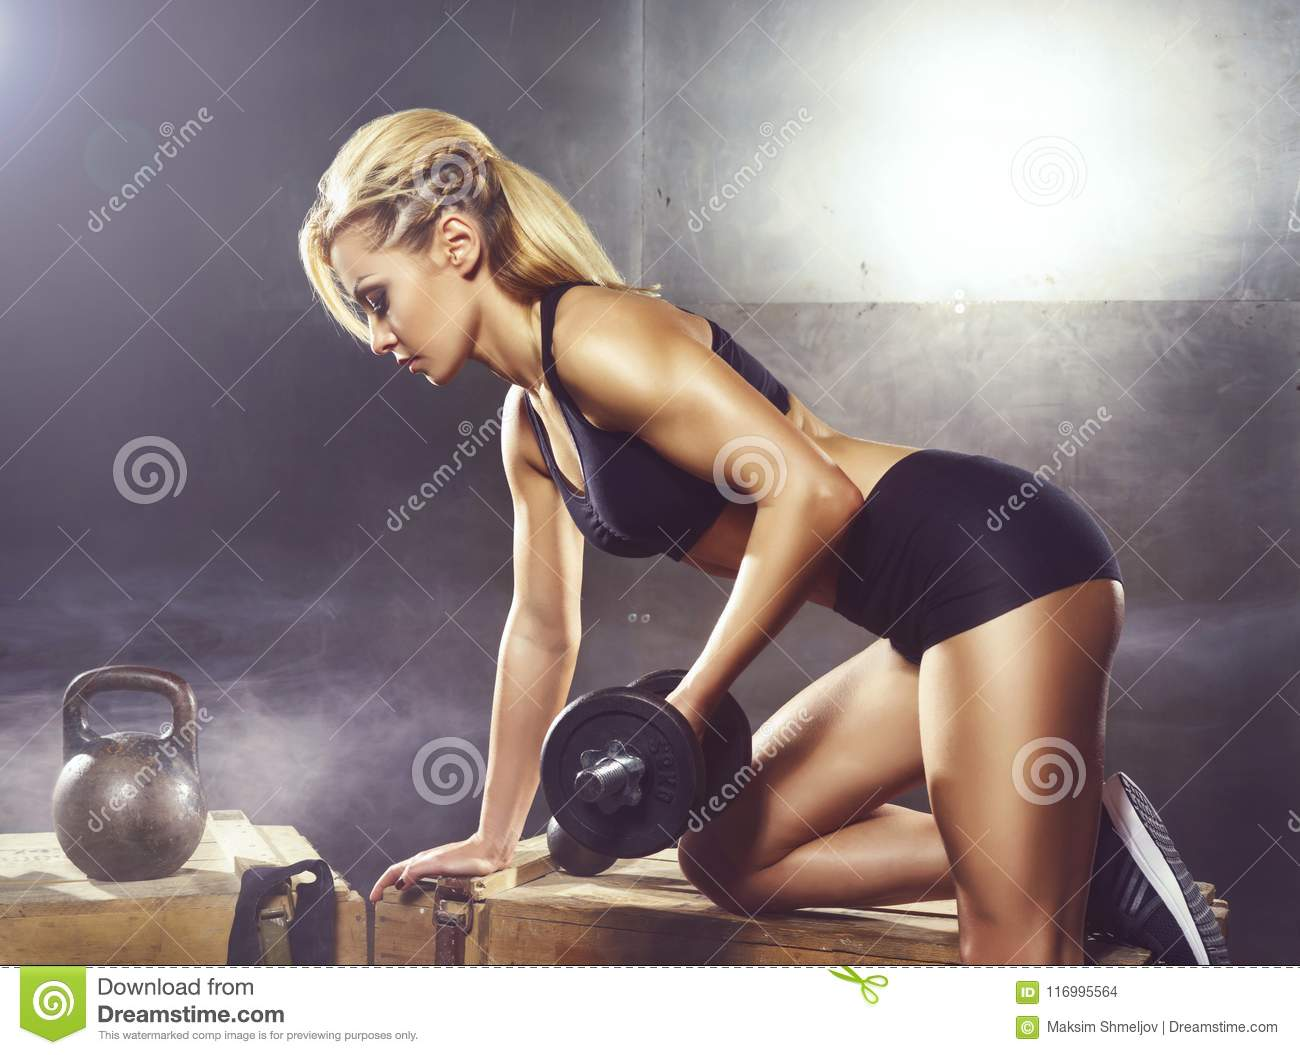 Fit and sporty young girl having a training. Underground gym. Health, sport, fitness concept.